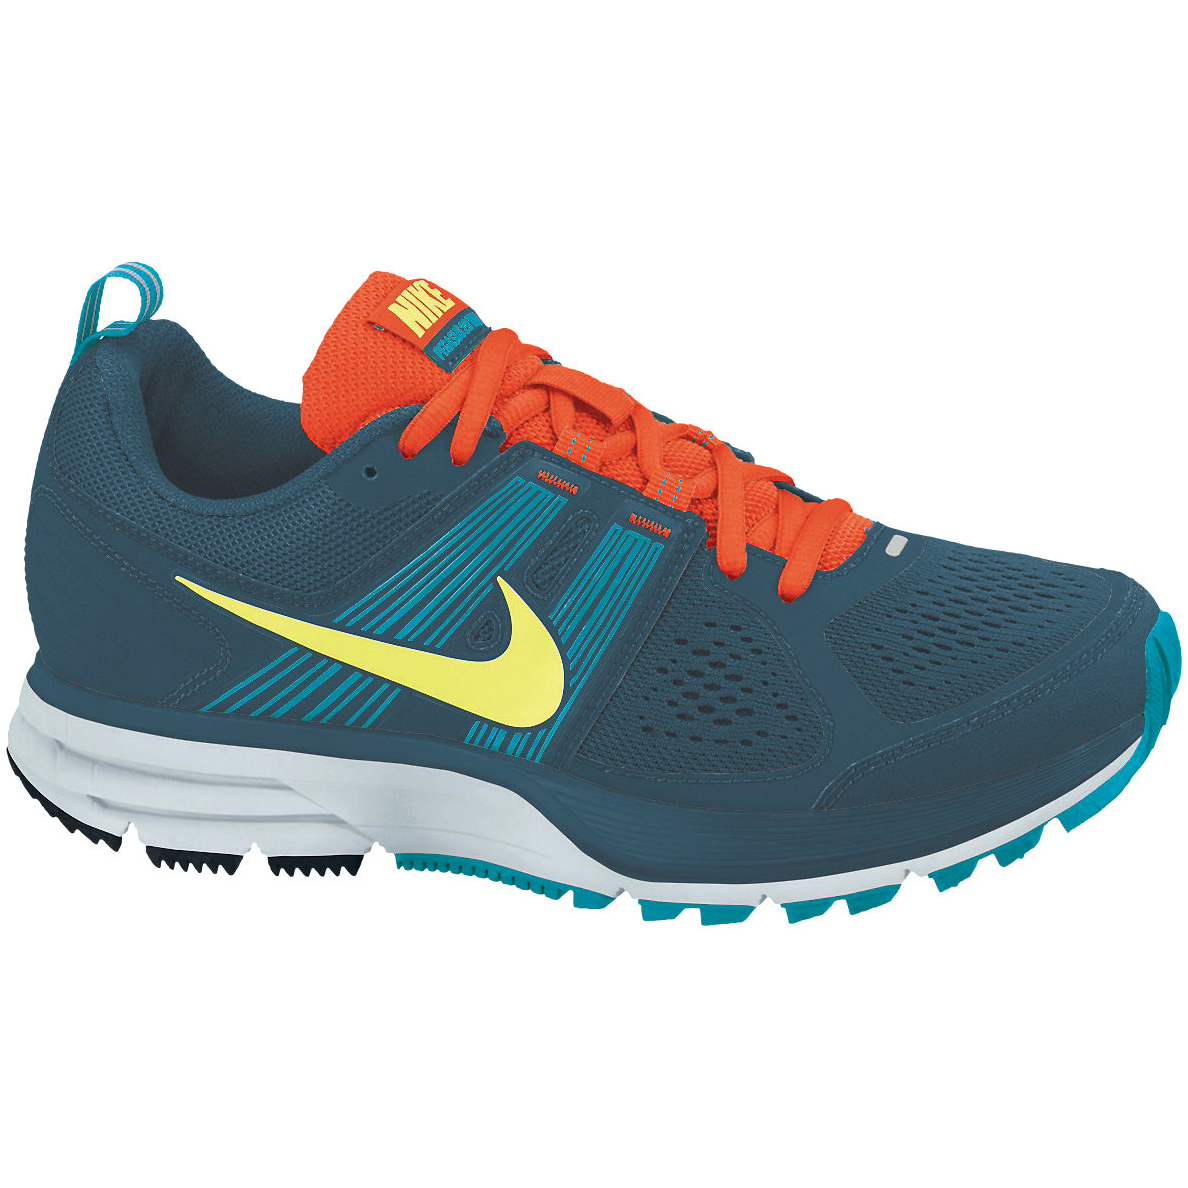 802eac57916 Acquista nike pegasus trail - OFF71% sconti